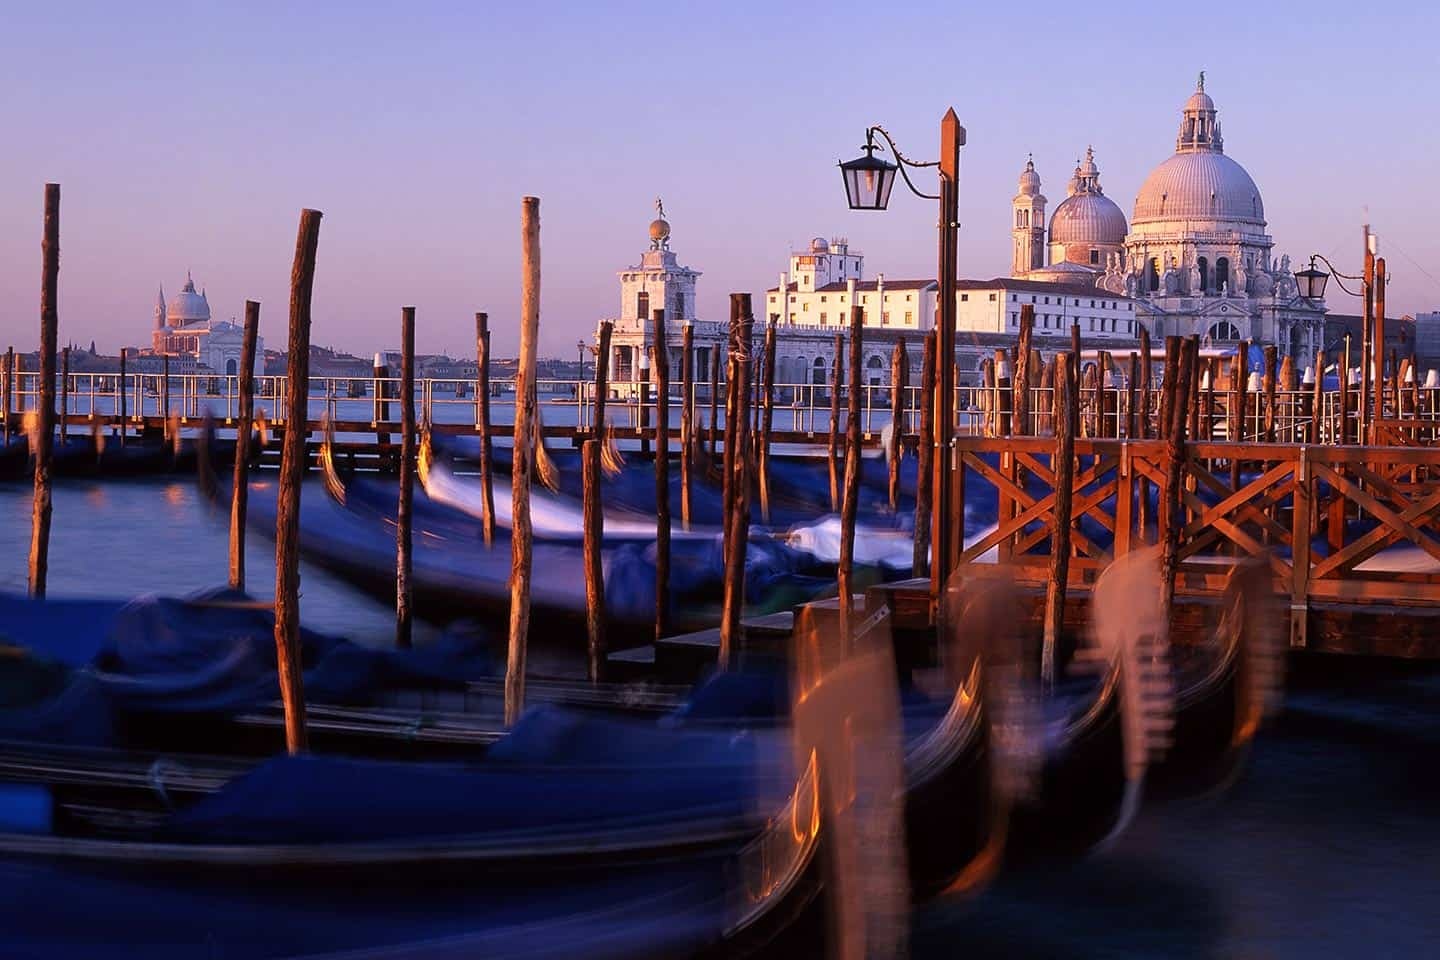 Image of Santa Maria della Salute and gondolas at sunrise, Venice Italy